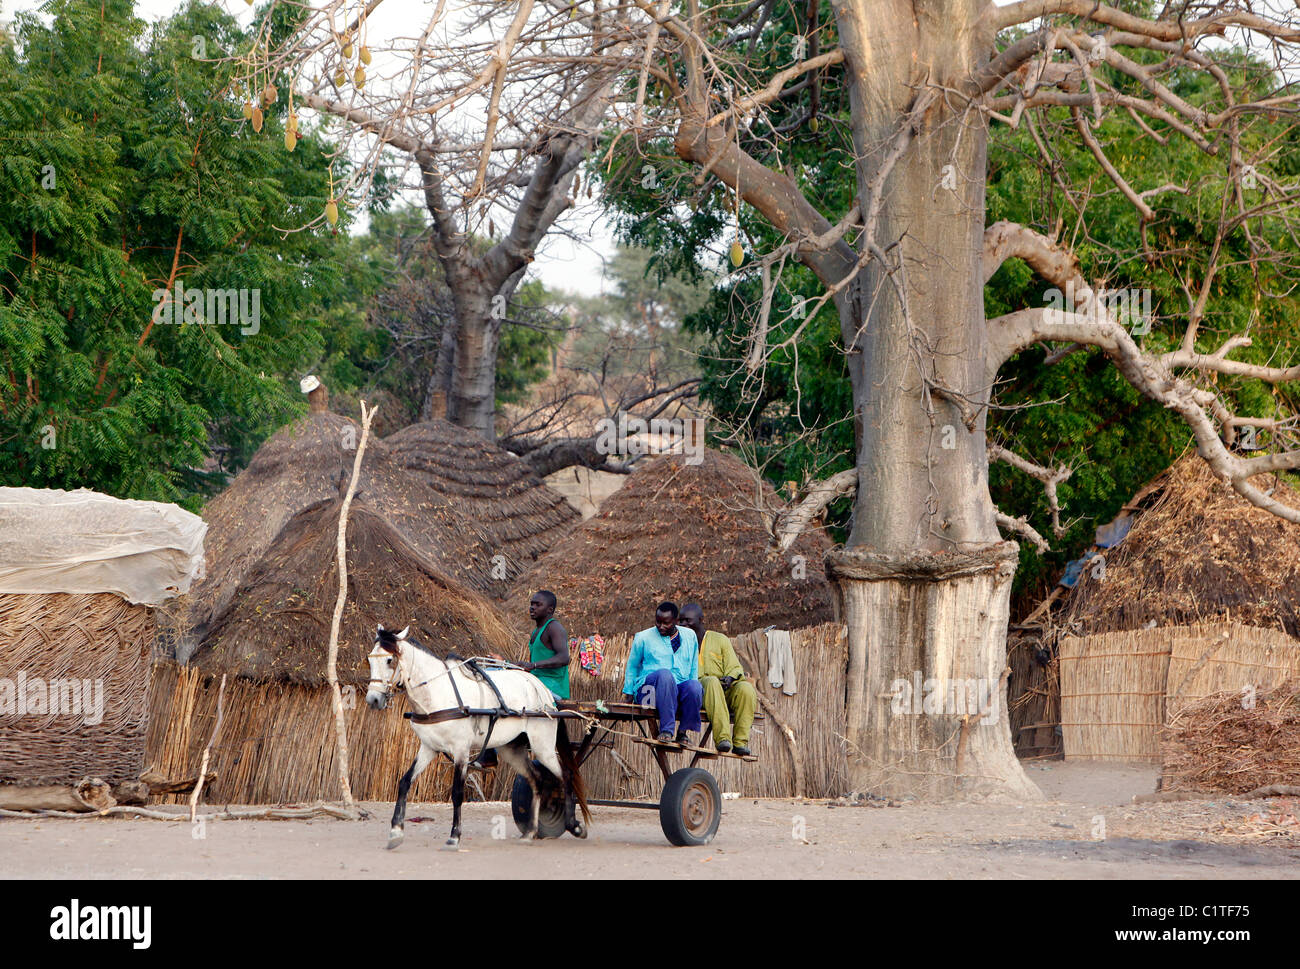 horse and cart in the thatched circular huts village of Farar, Senegal, Africa - Stock Image